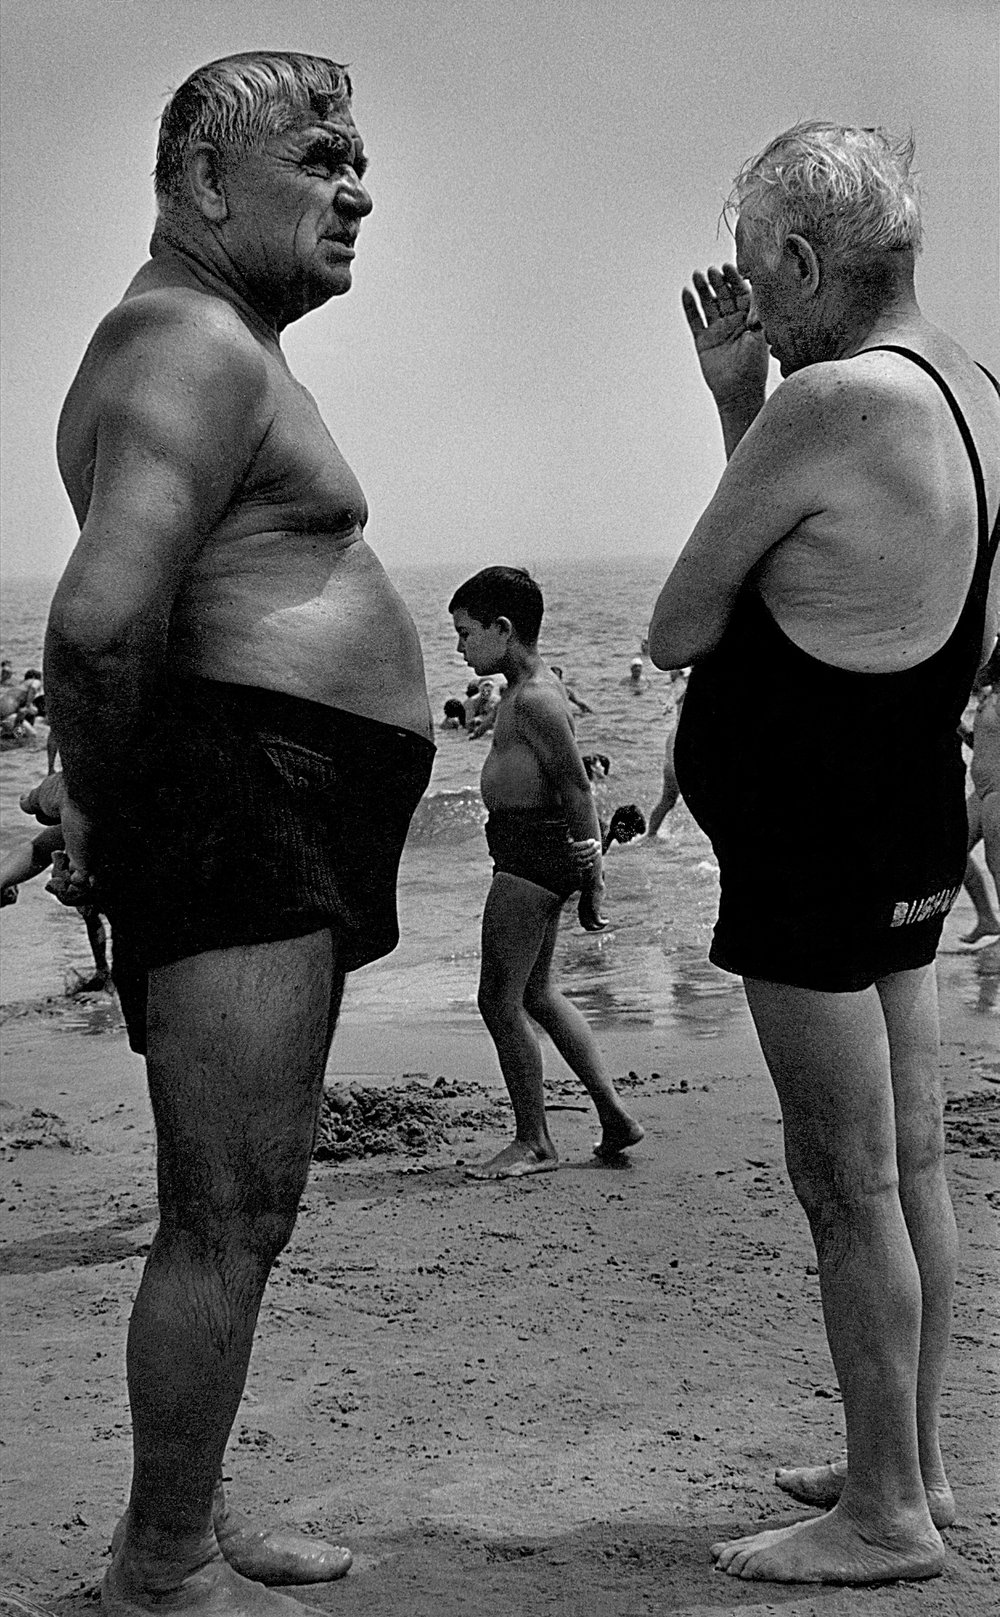 CI-061_Two_Men_and_a_Boy_Contemplate_1950.jpg